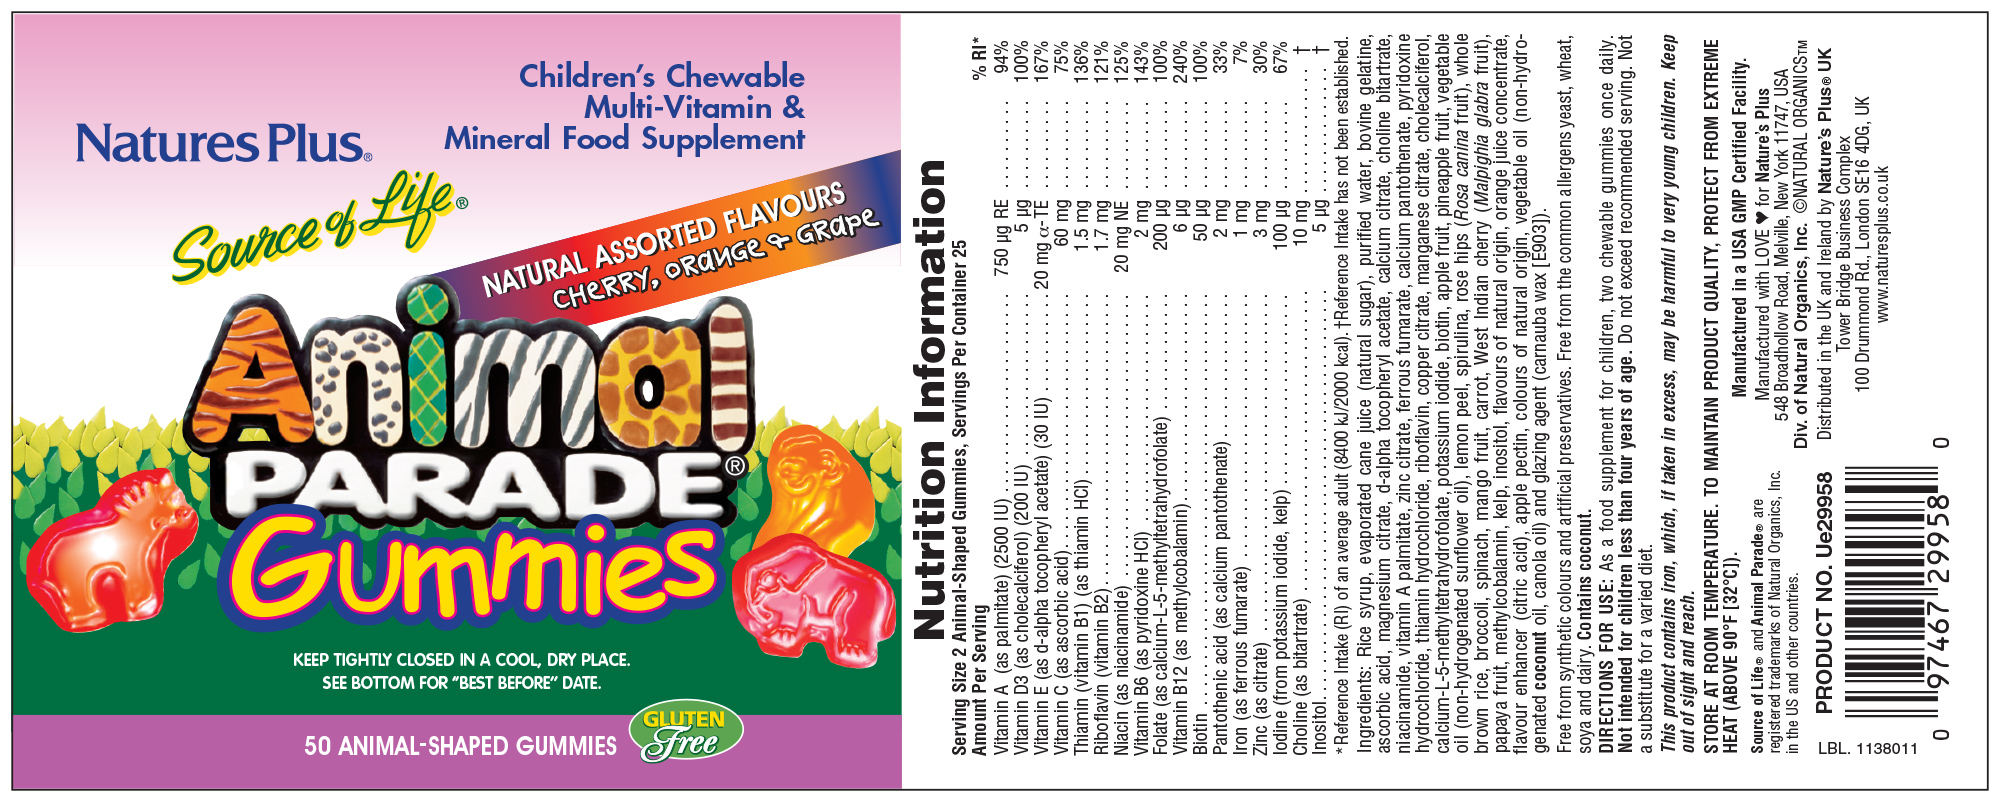 Source of Life Animal Parade Gummies Natural Assorted Flavours 50's (Currently Unavailable)